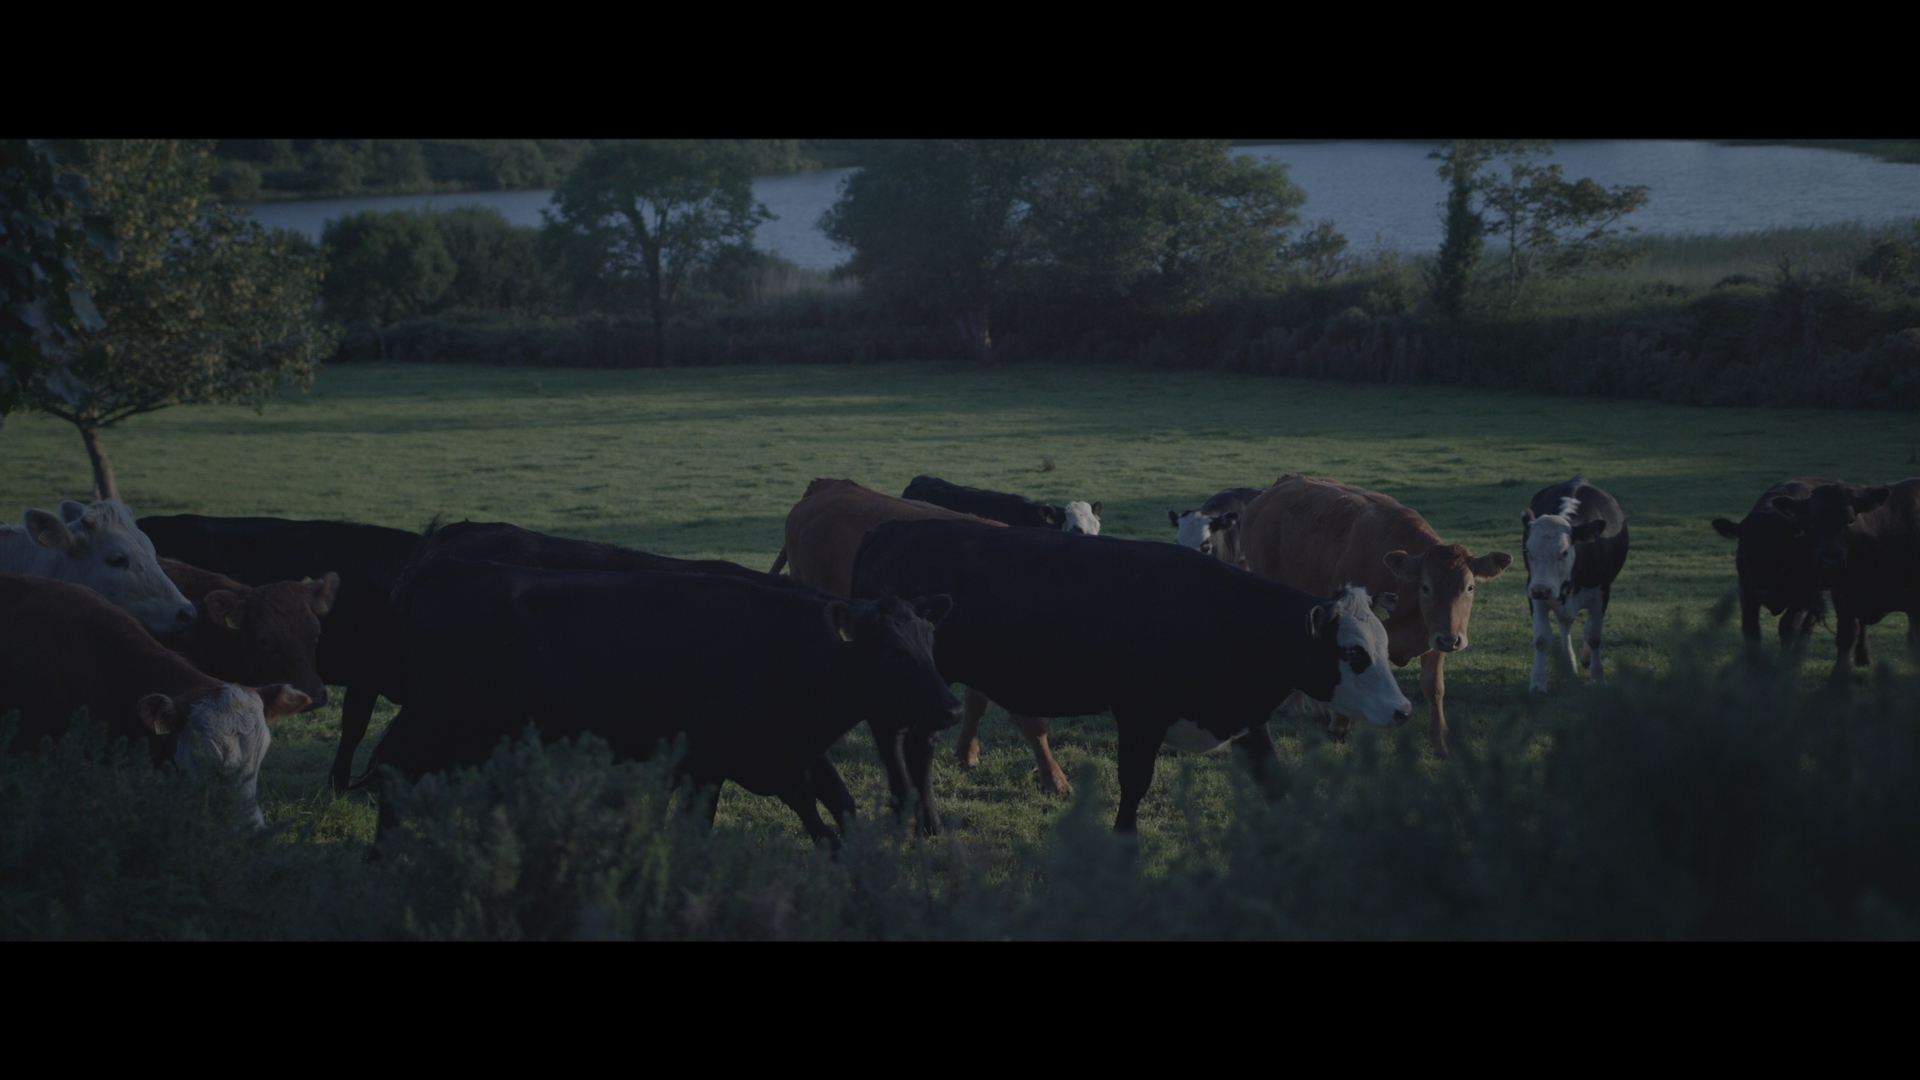 FPN in dark cows_1.2.1.jpg